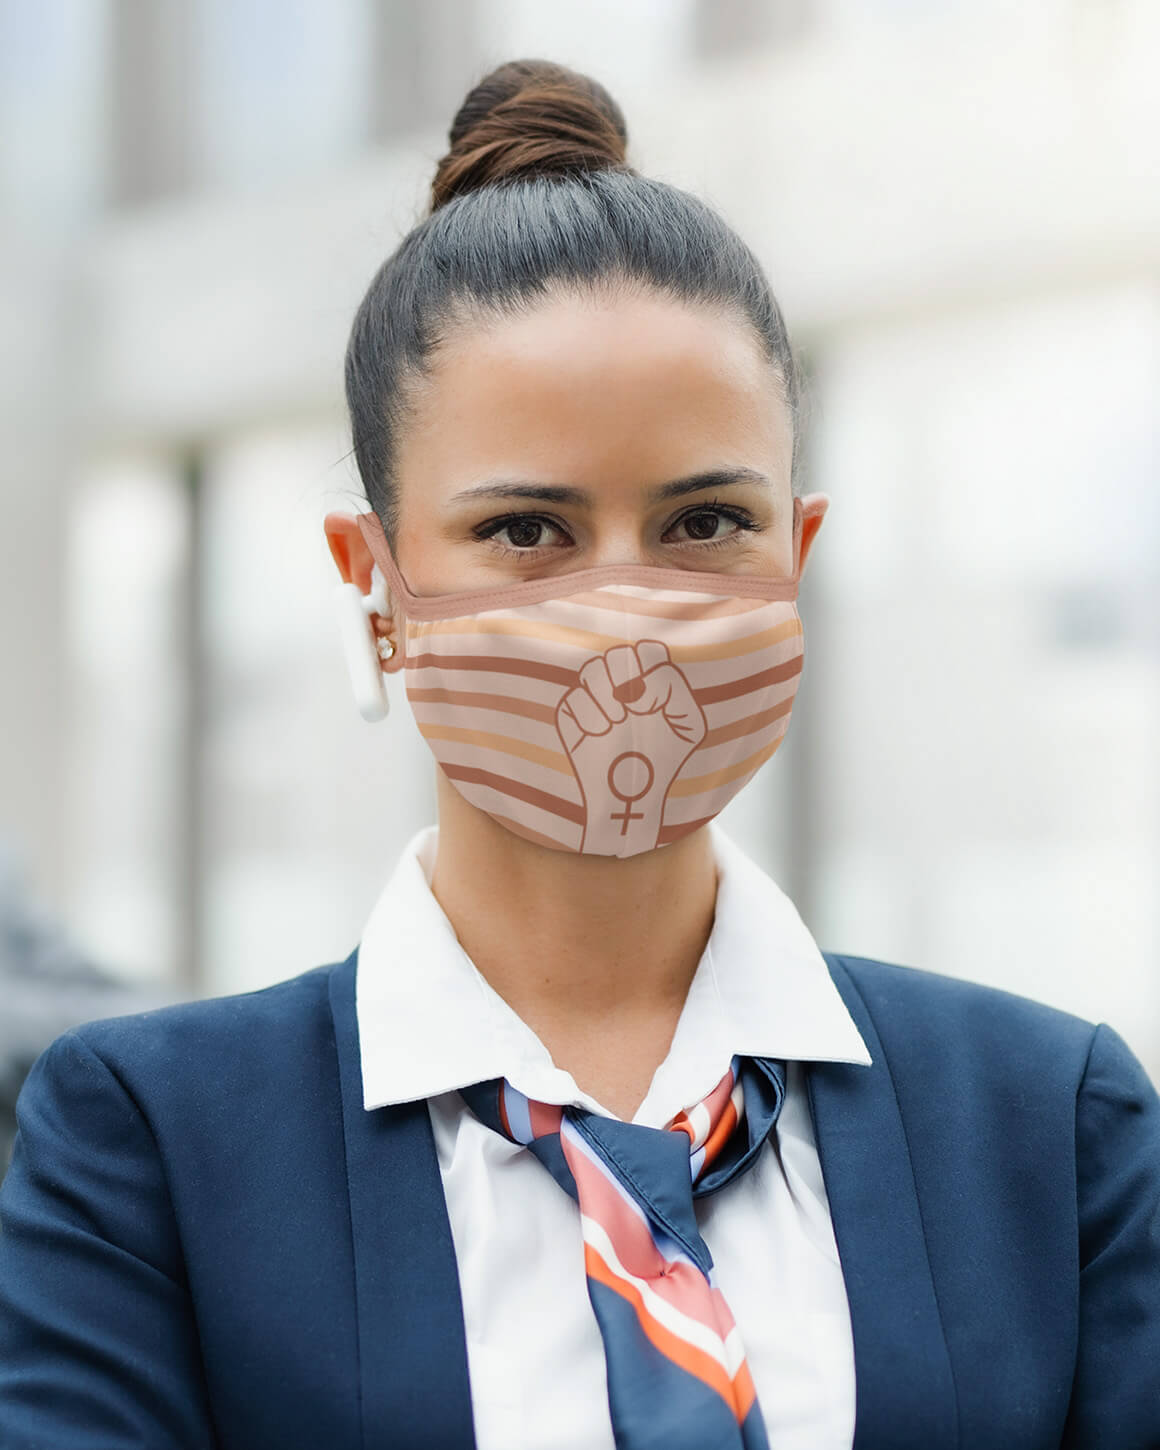 Woman in a suit wearing resist face mask